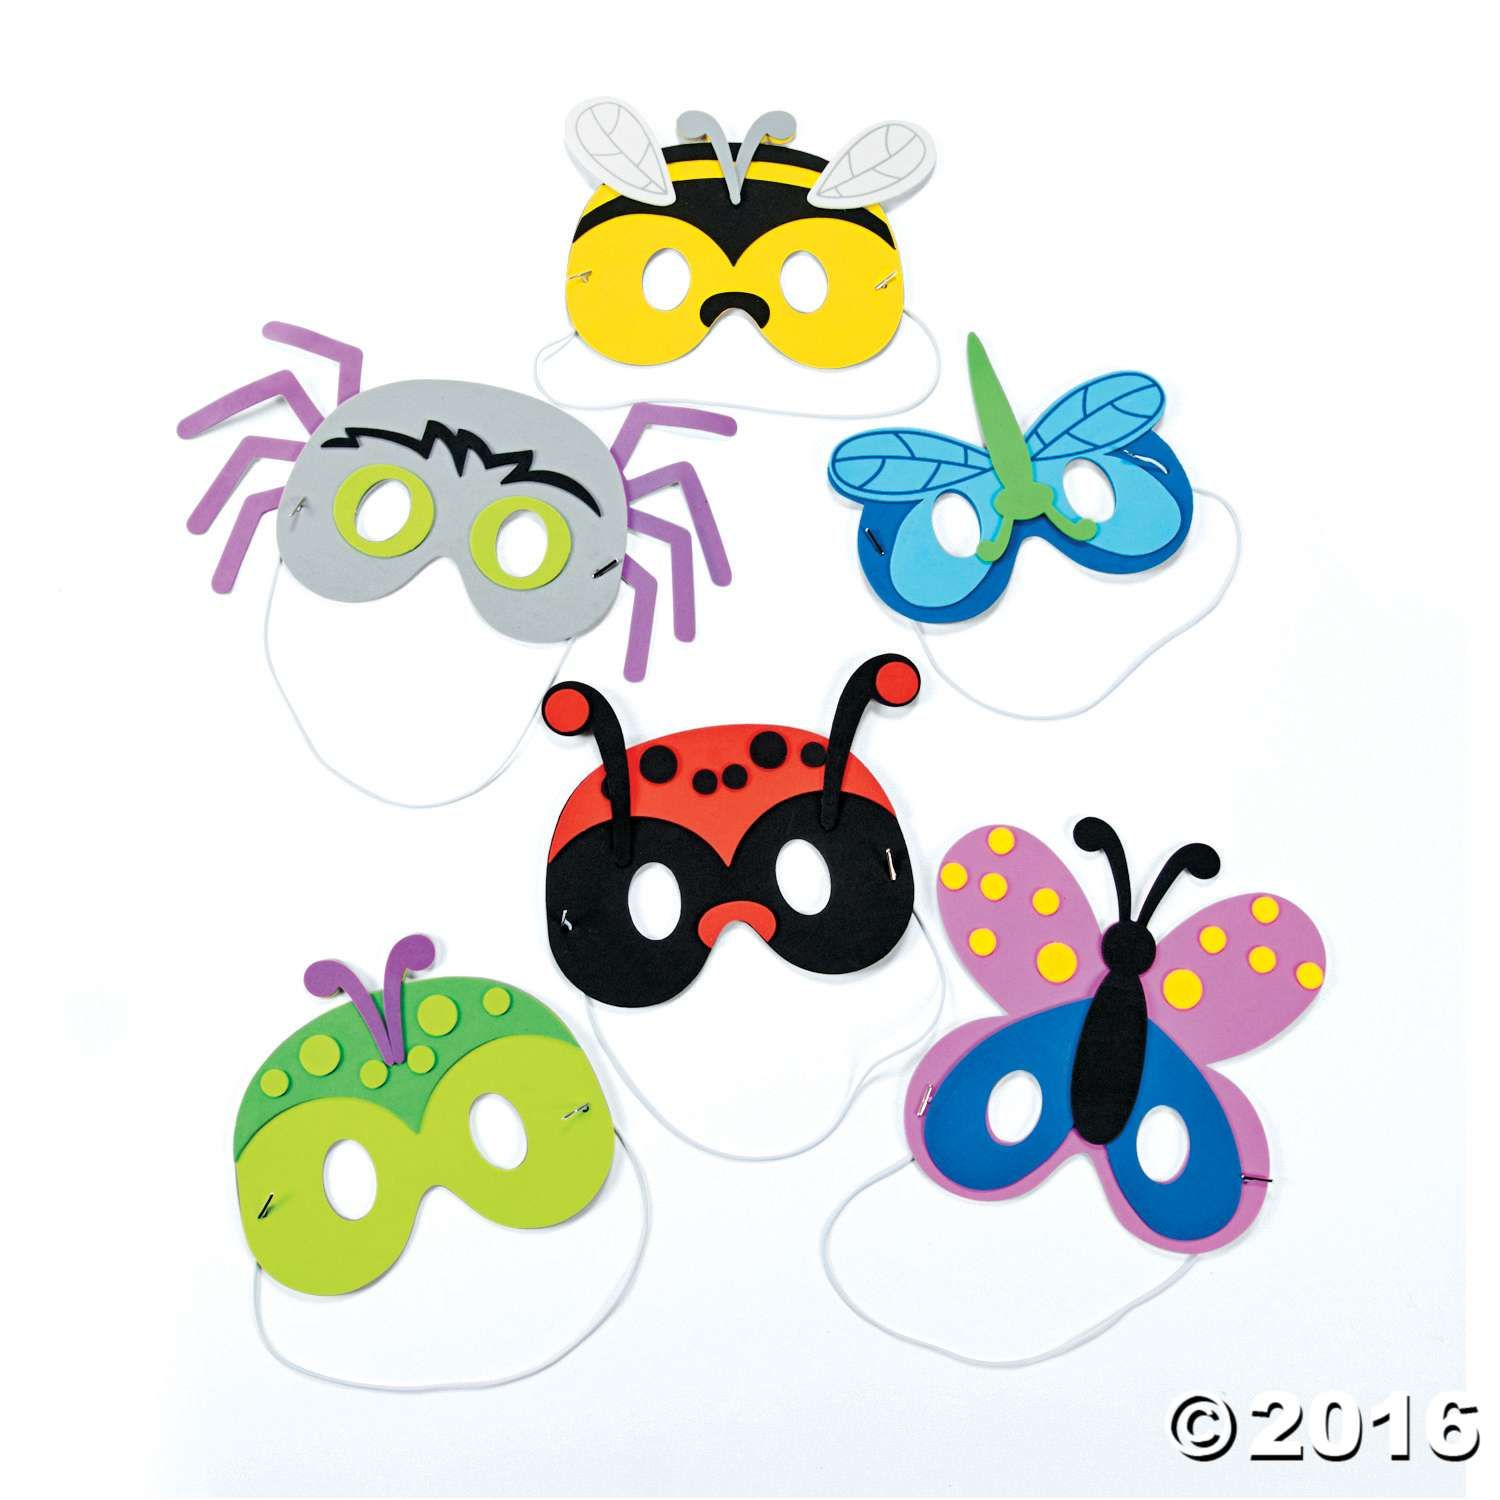 Be An Enigmatic Insect With This Bug Mask Craft Kit For Kids Pass The Kits Out As Party Favors